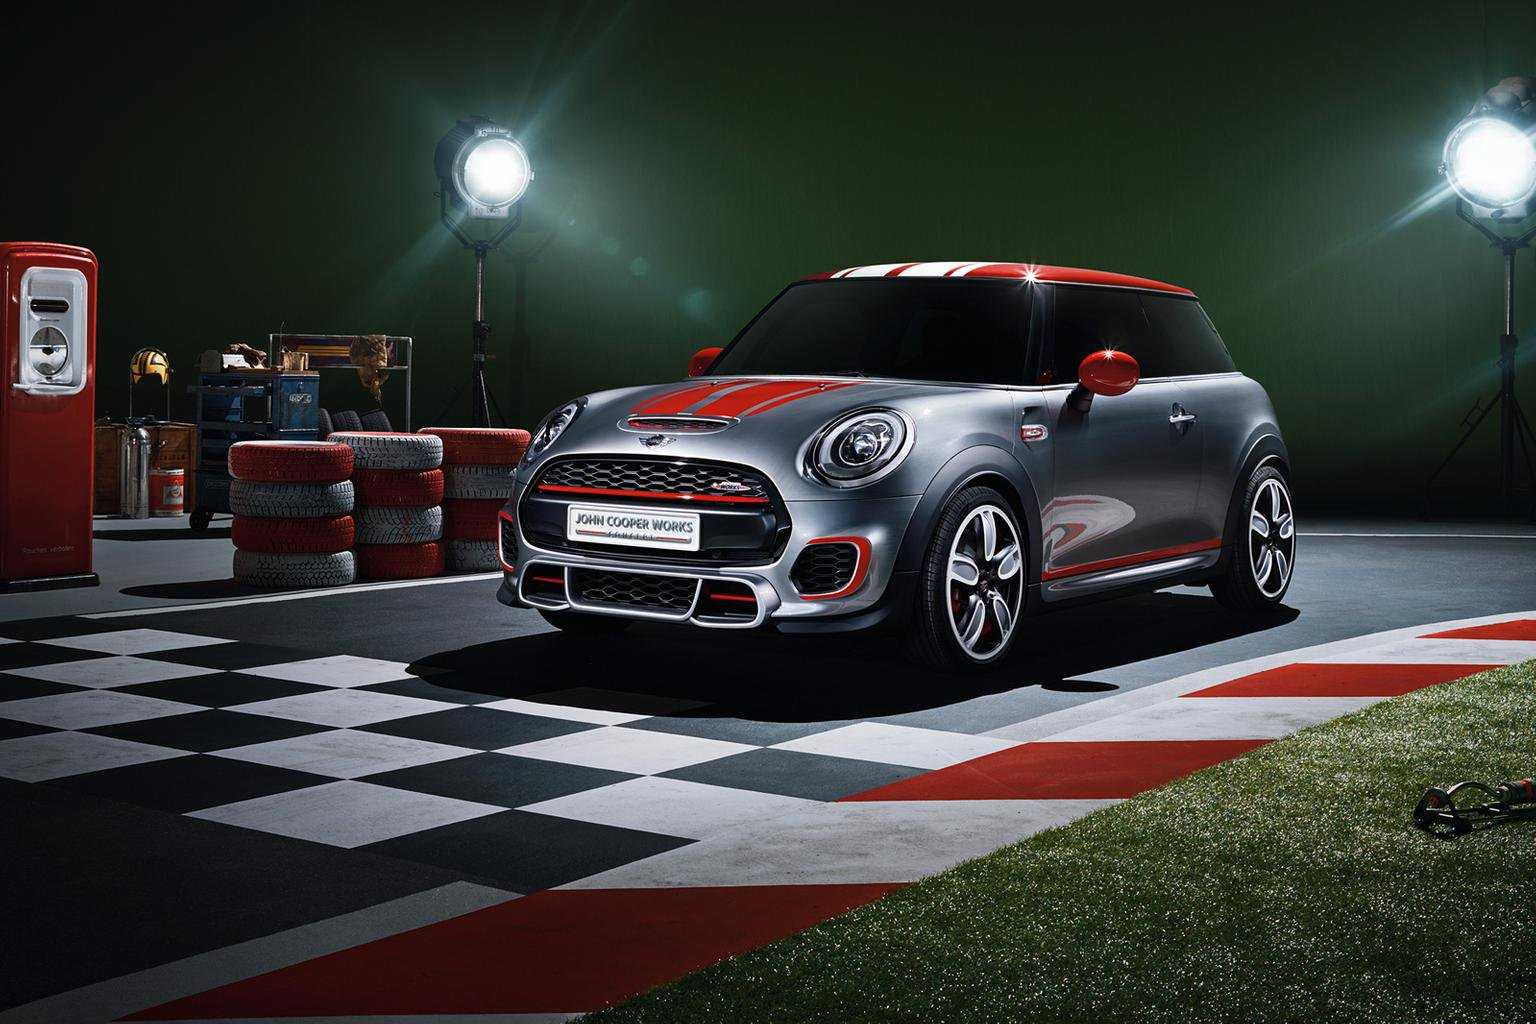 Mini John Cooper Works Concept to be shown at Detroit